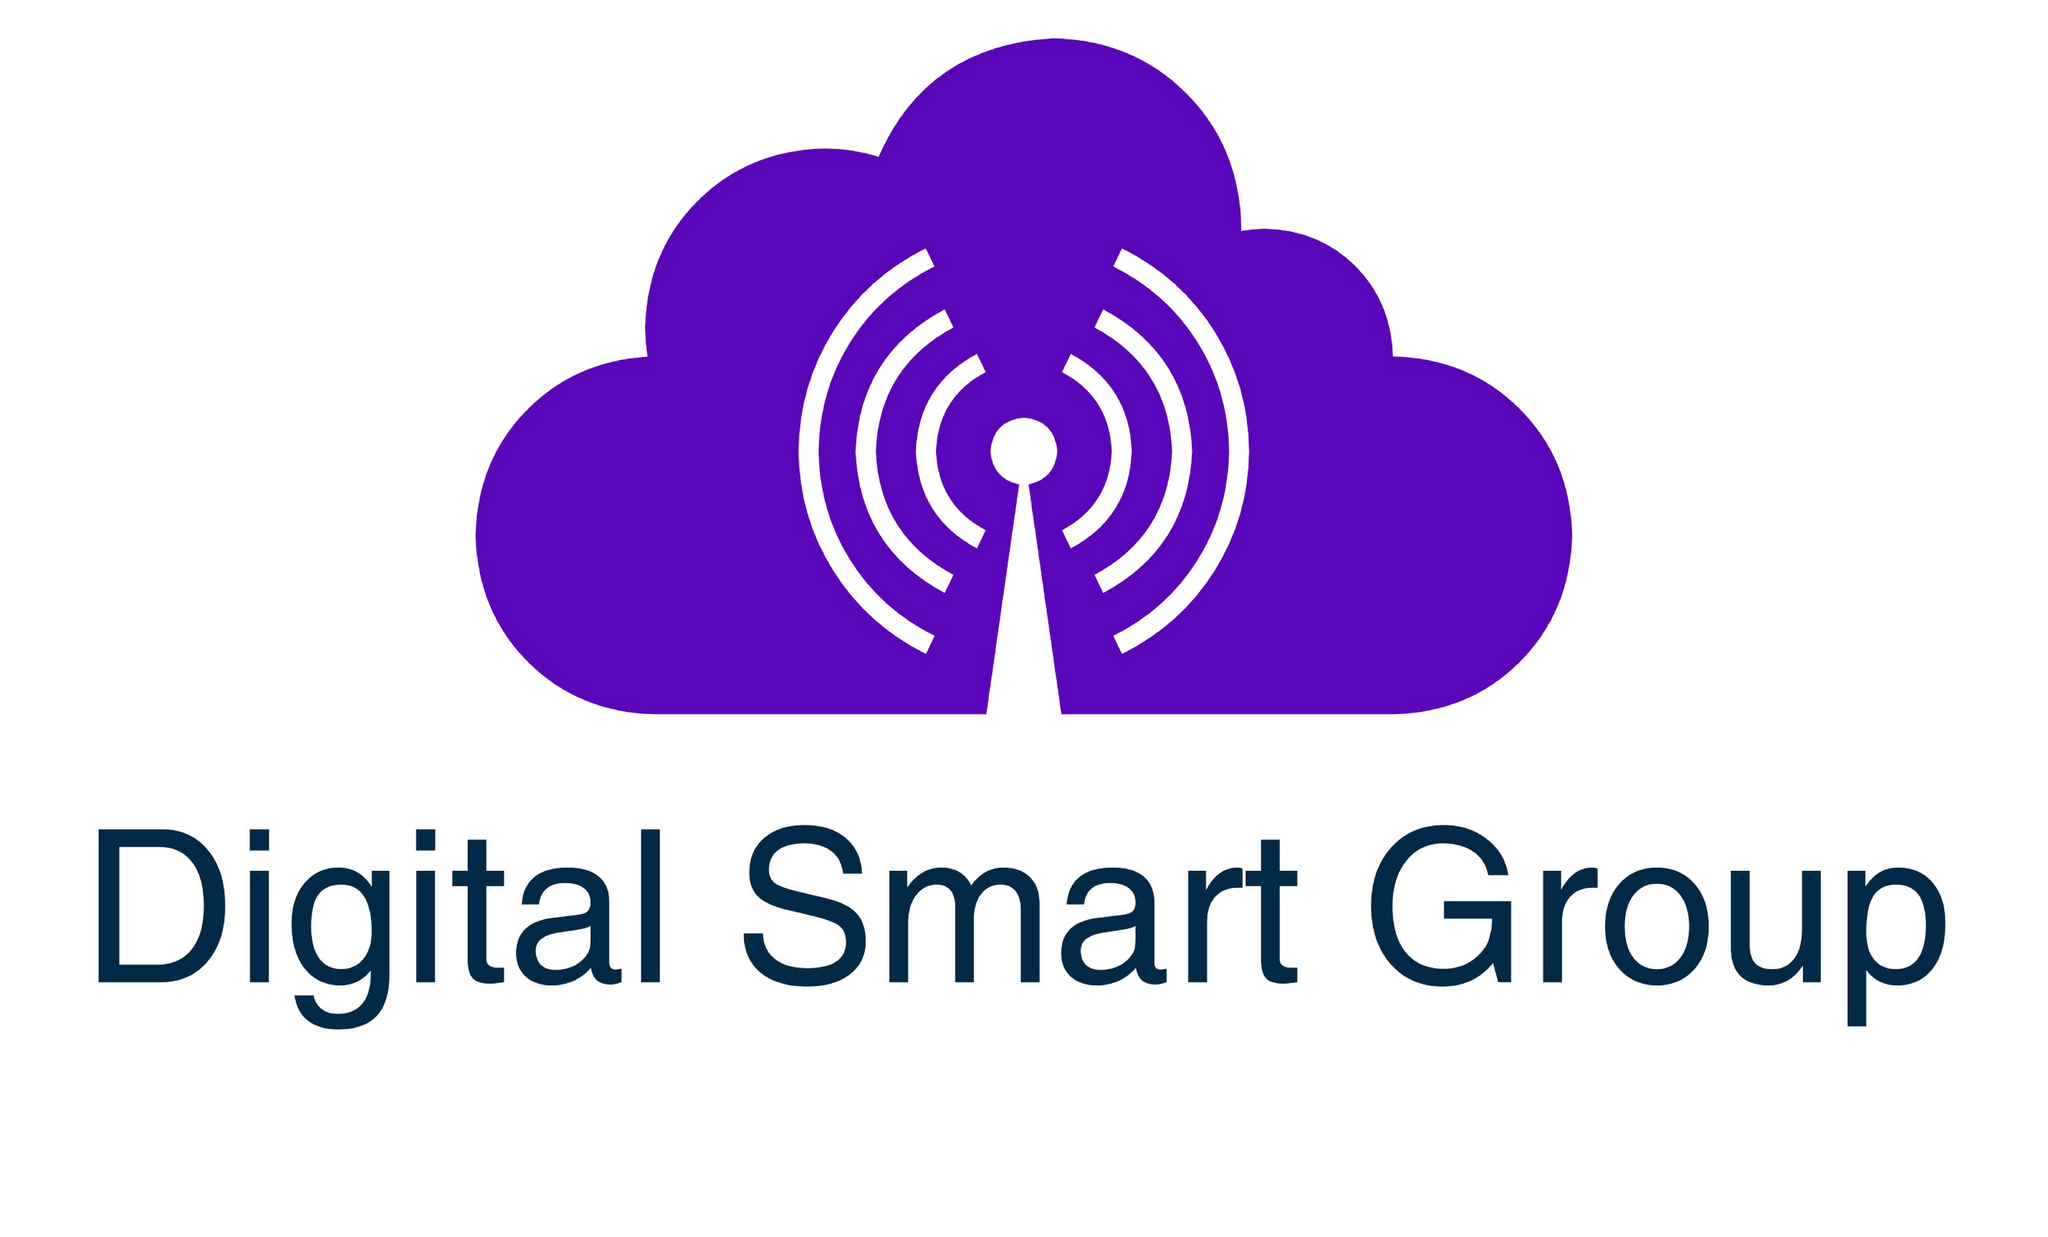 DIGITAL SMART GROUP